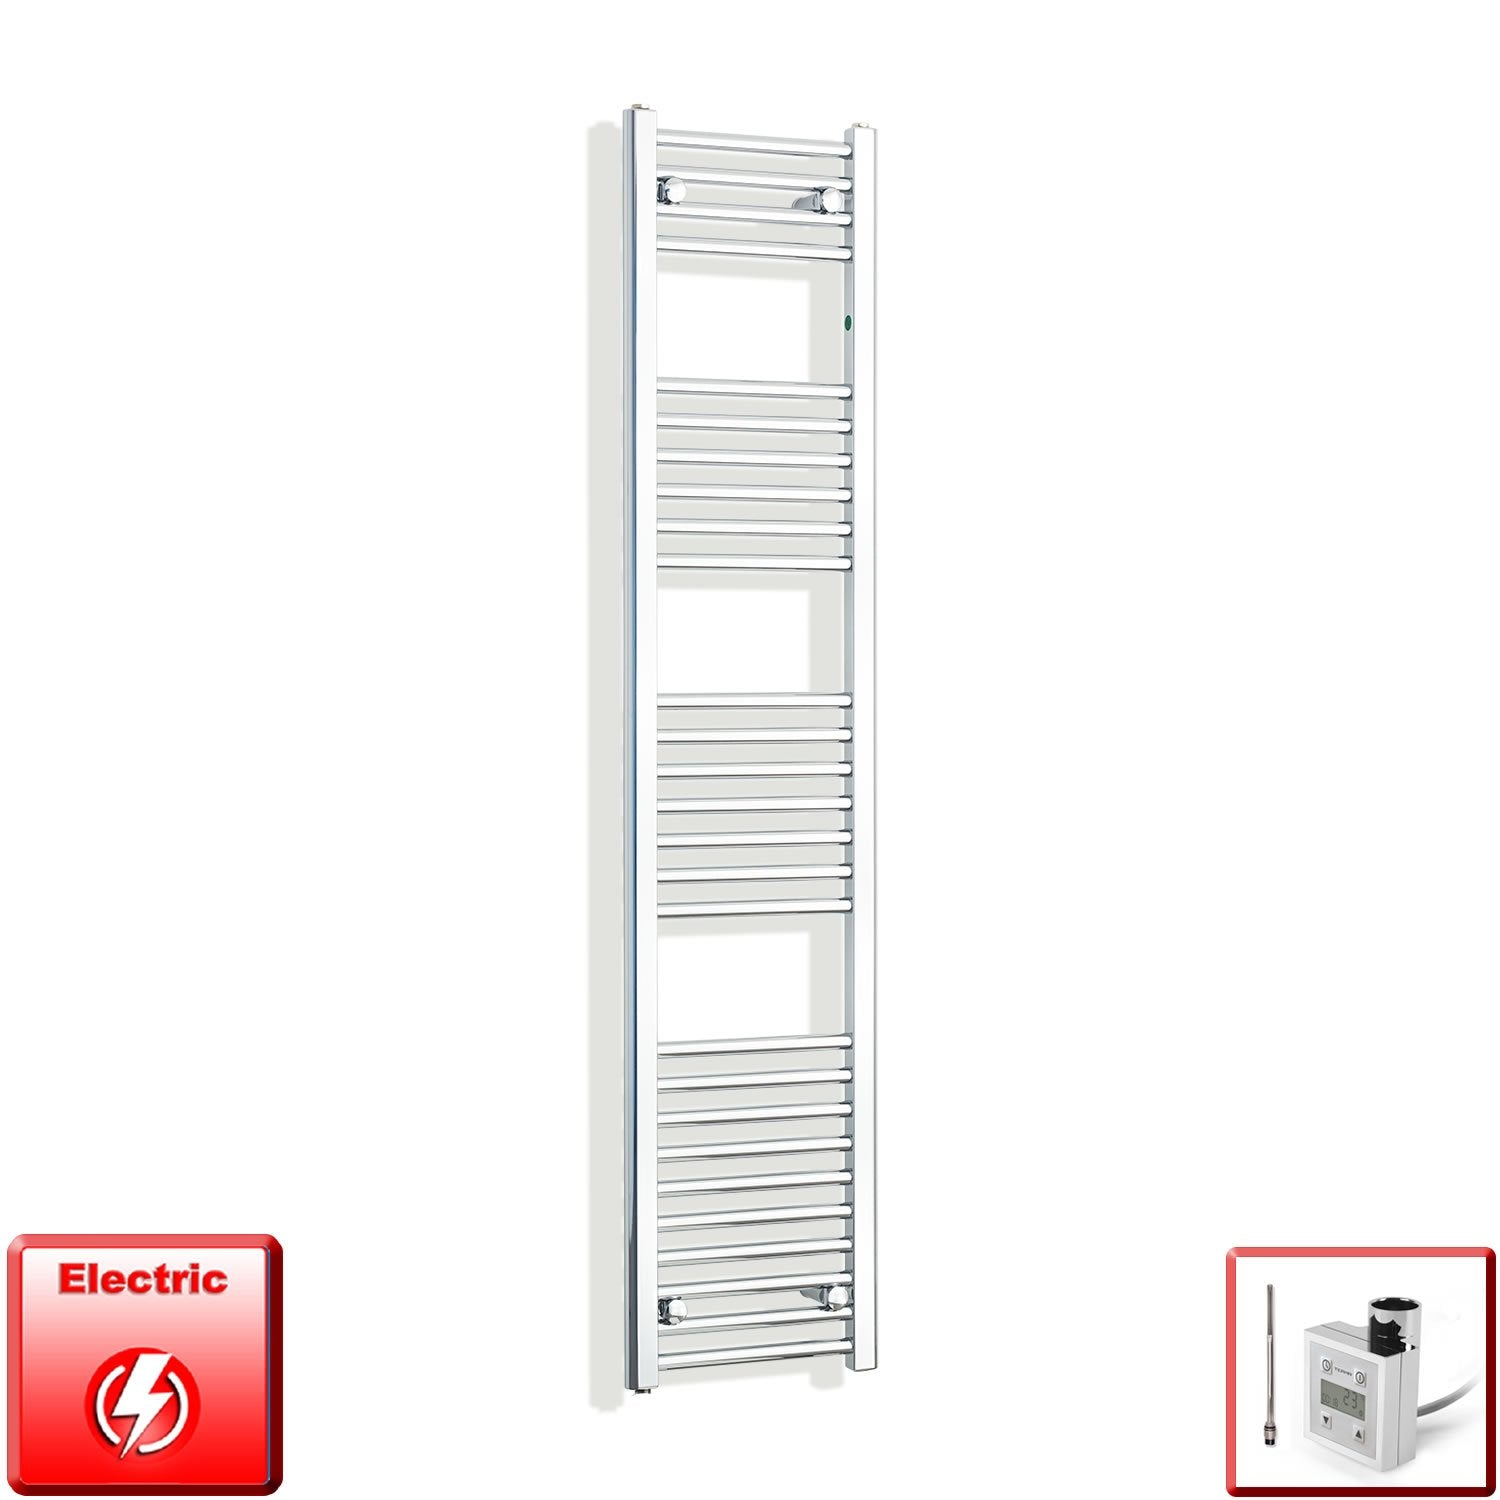 350mm Wide 1600mm High Flat Chrome Pre-Filled Electric Heated Towel Rail Radiator HTR,KTX-3 Thermostatic Element